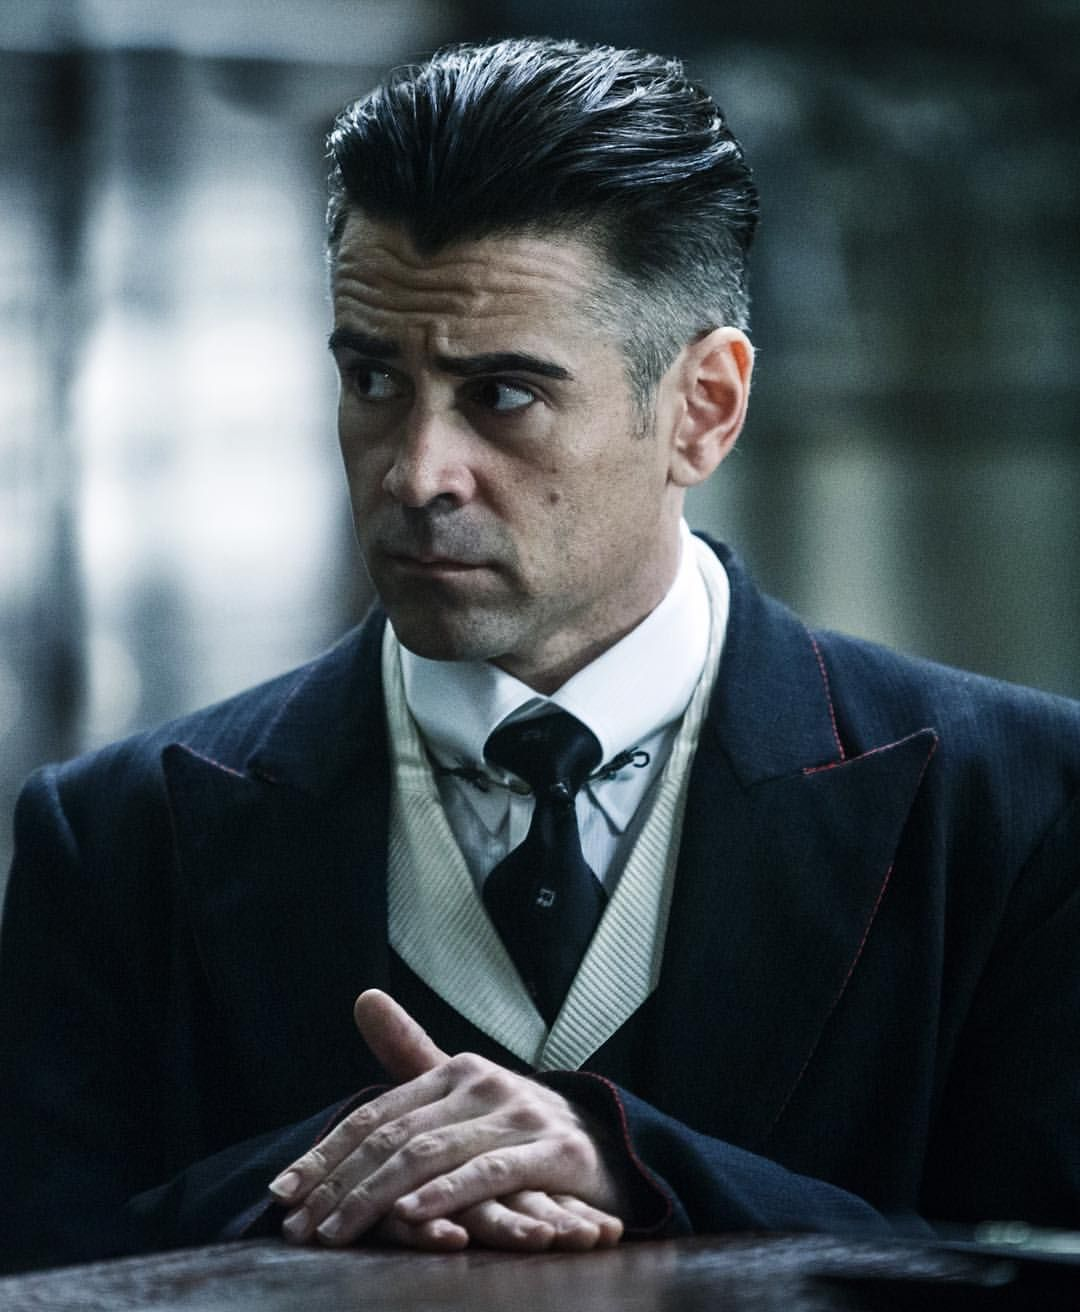 All In Favor Of Colin Farrell Playing Grindelwald Fantastic Beasts Colin Farrell Fantastic Beasts And Where